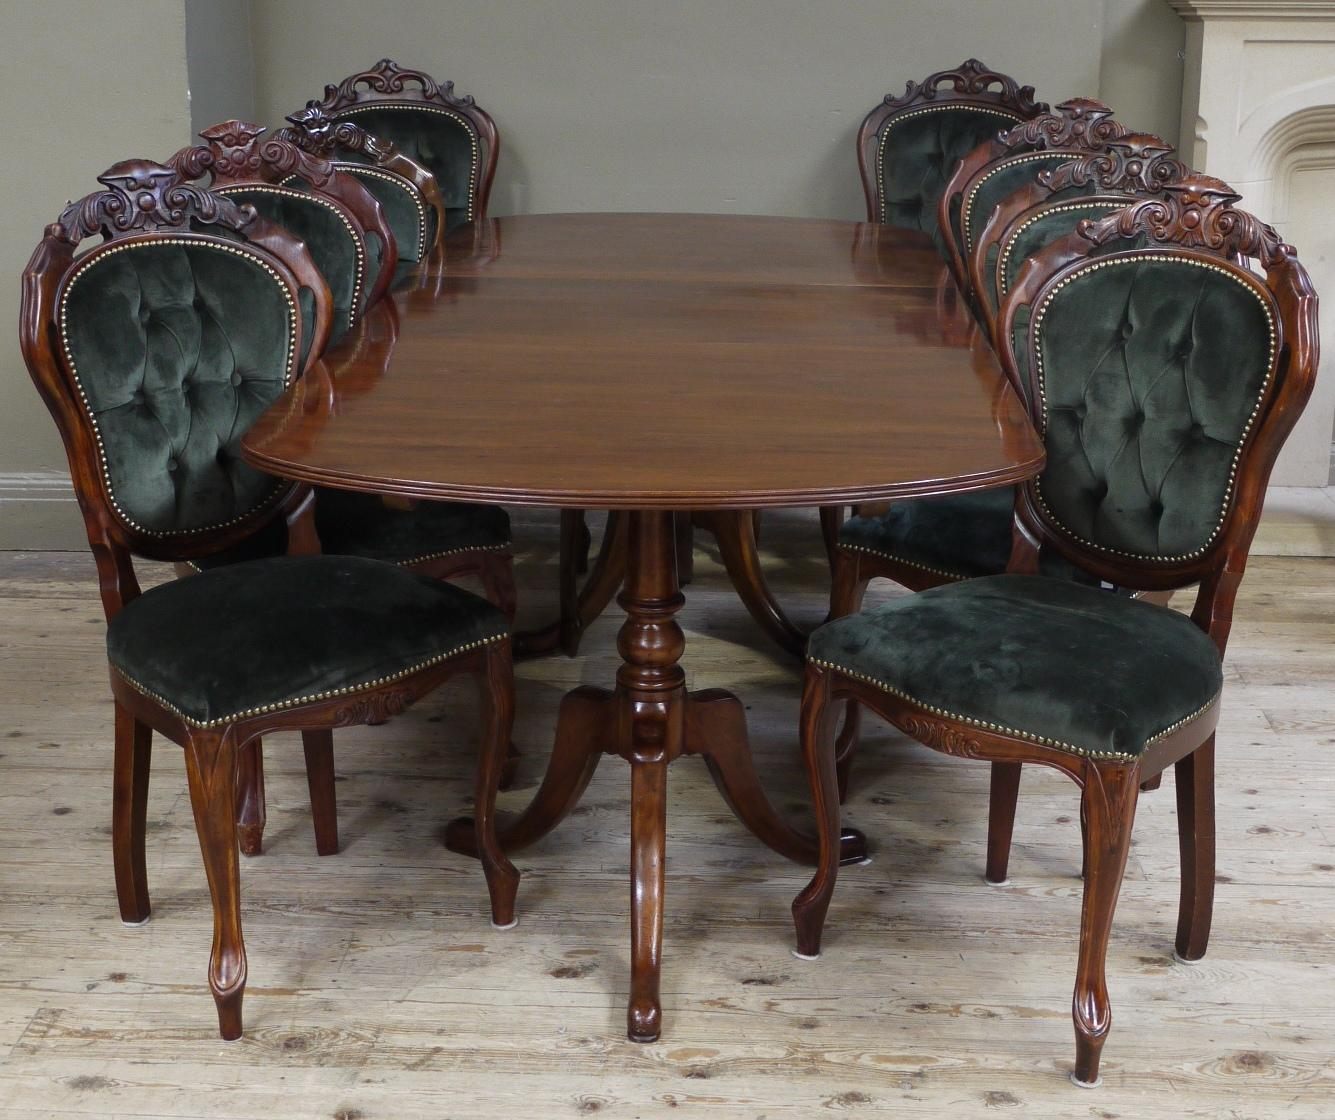 Lot 350 A Reproduction Mahogany Twin Pillar Dining Table In Regency